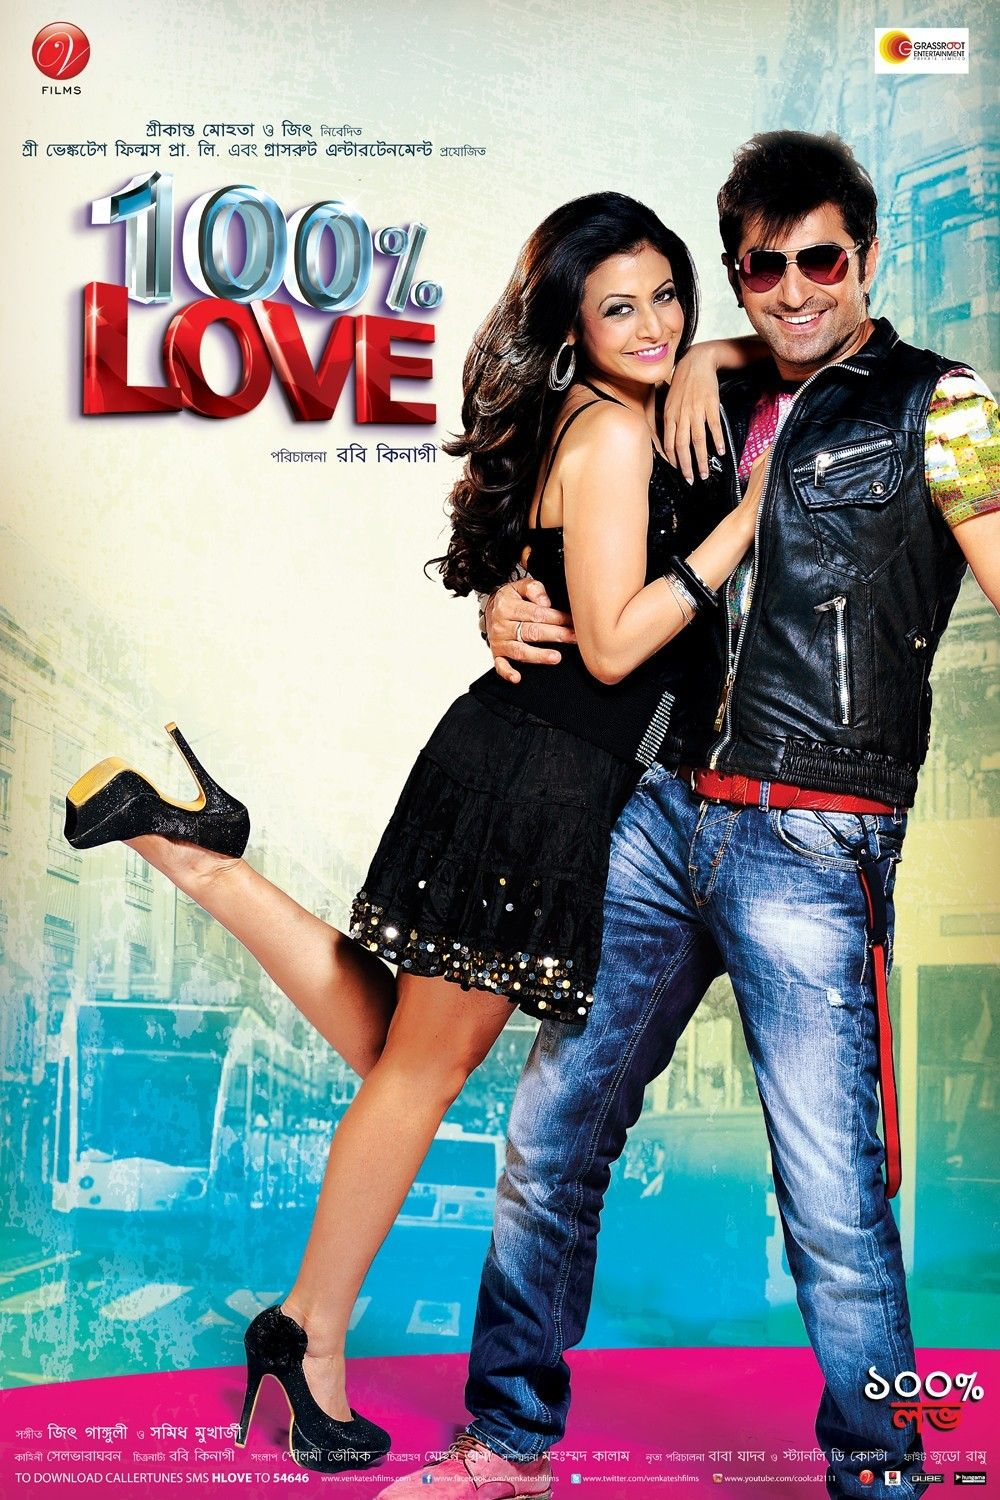 100 love kolkata full movie download